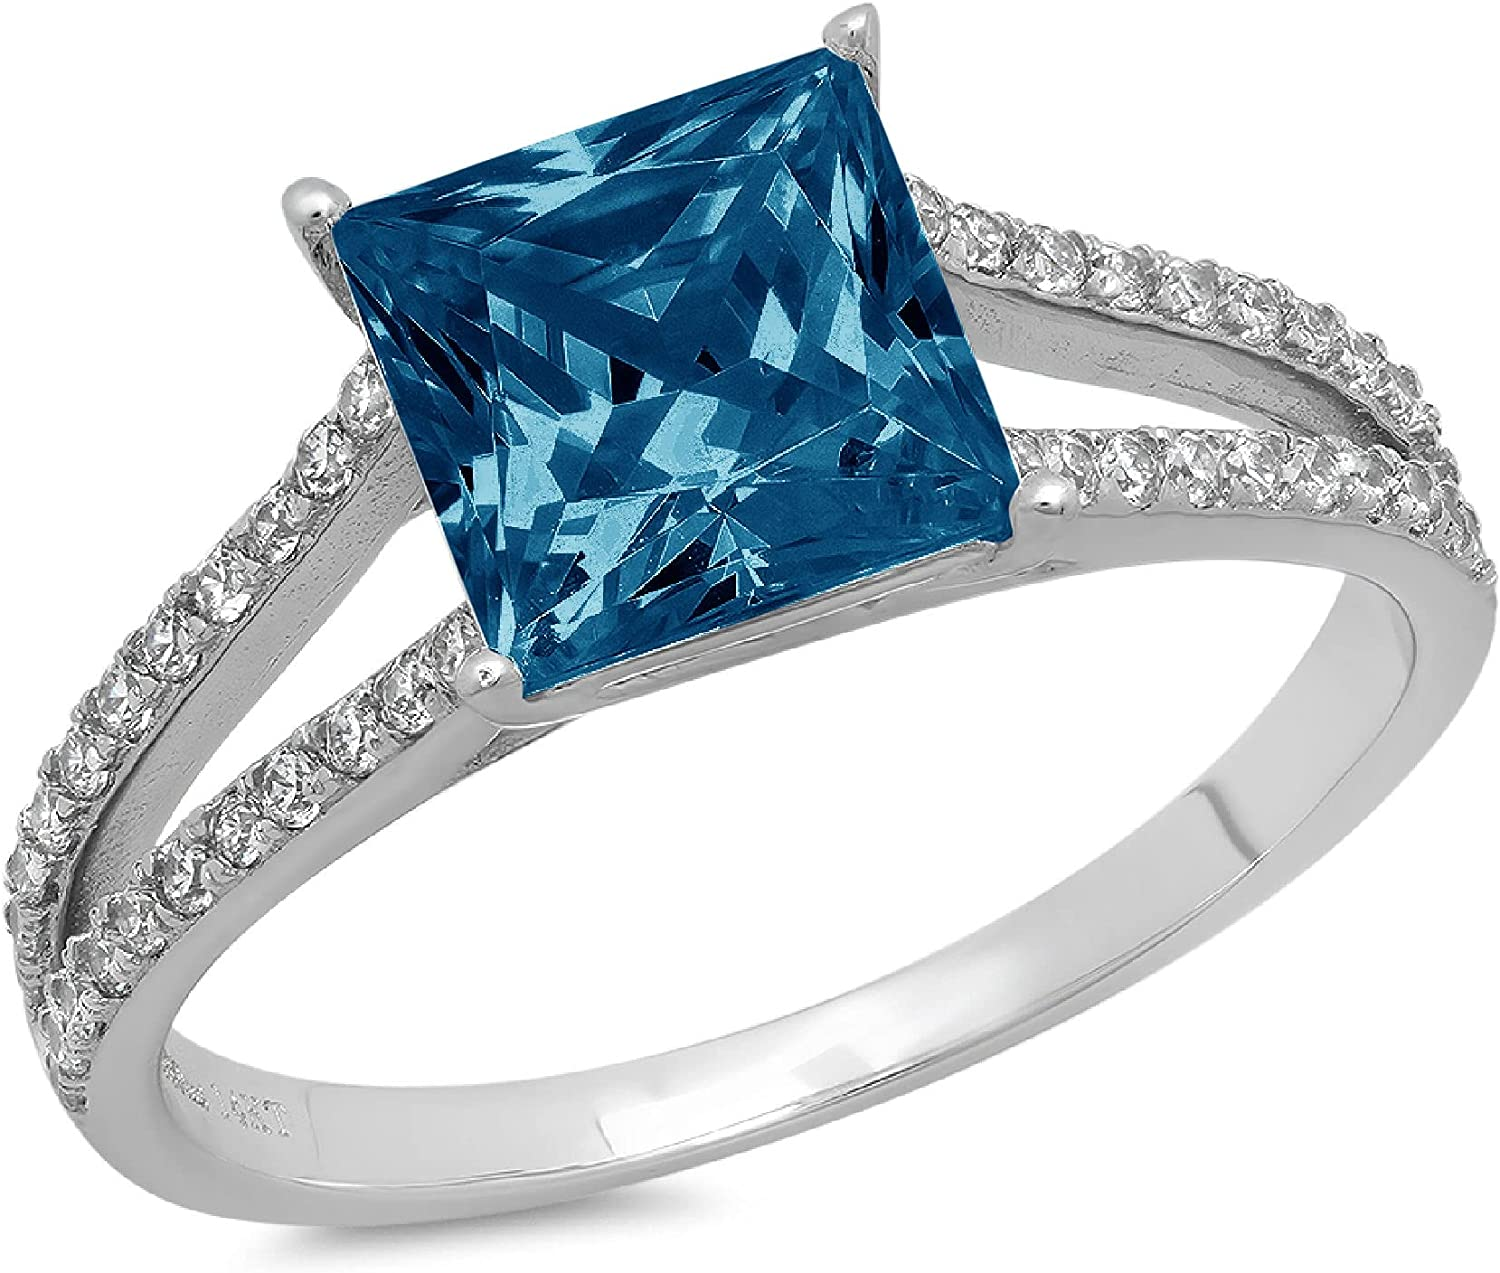 2.42 ct Princess Cut Solitaire Accent split shank Genuine Flawless Natural London Blue Topaz Gemstone Engagement Promise Statement Anniversary Bridal Wedding Ring Solid 18K White Gold